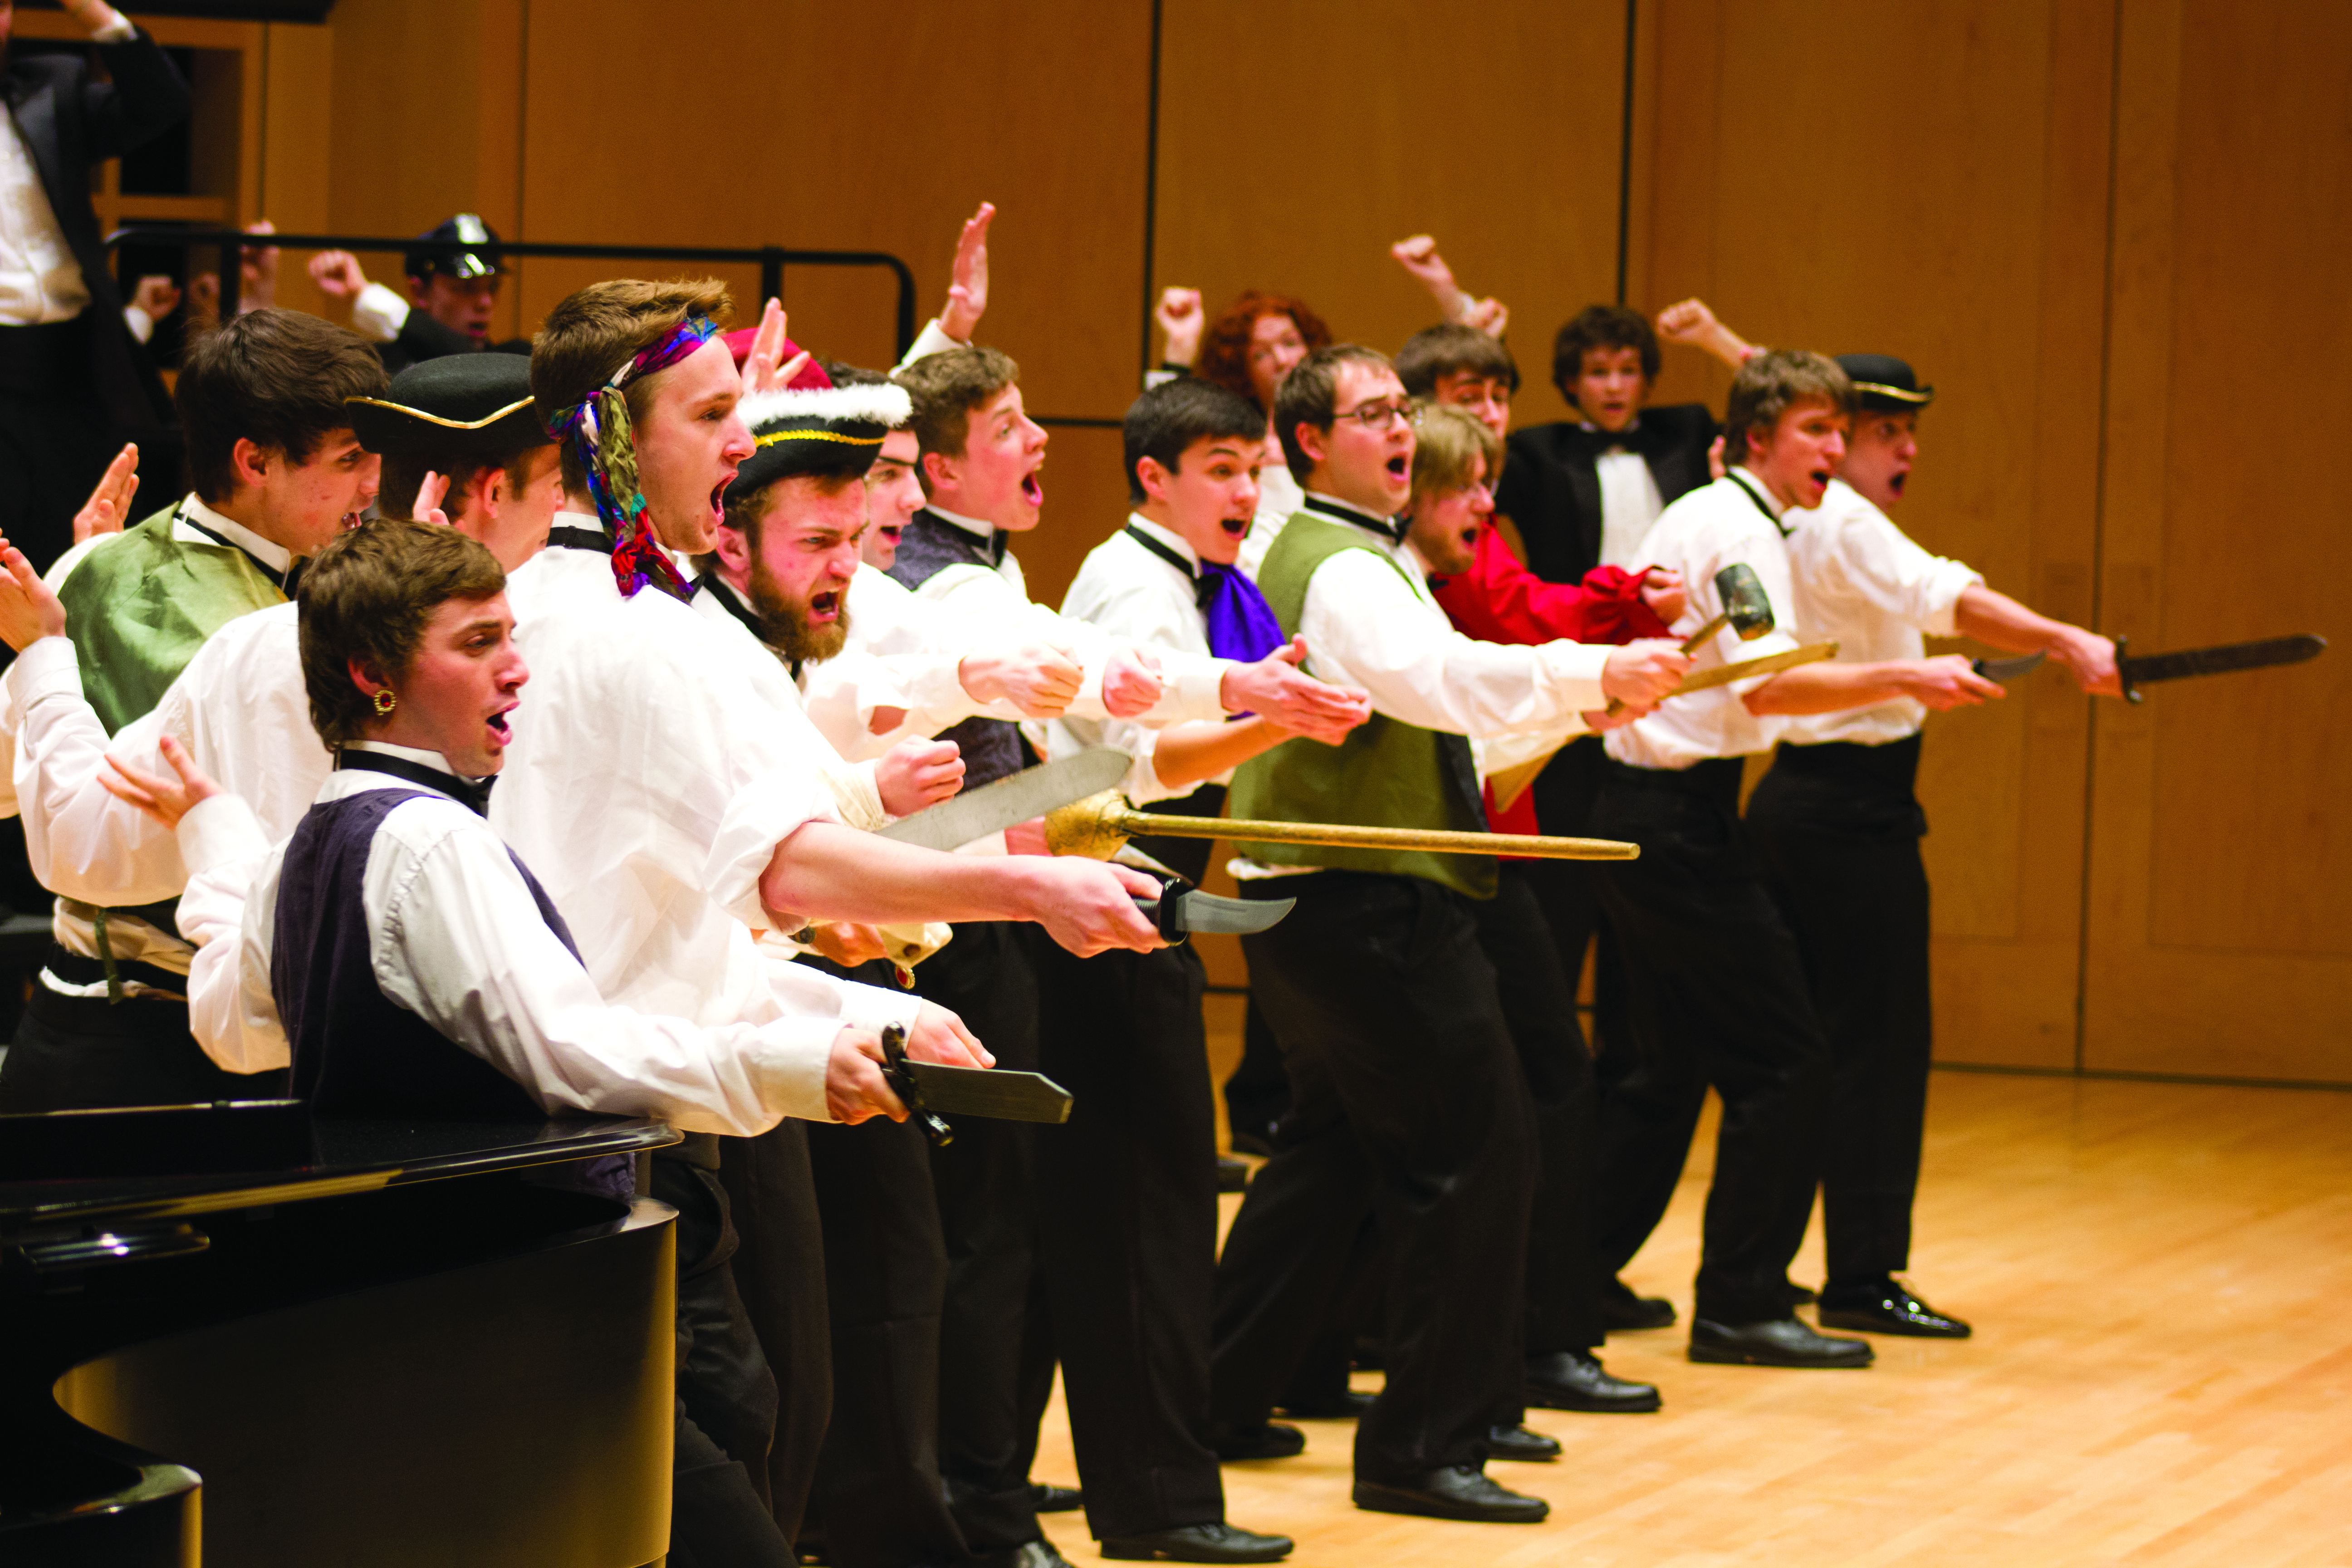 Members of the Goshen College choirs perform an opera number with colorful props and accessories